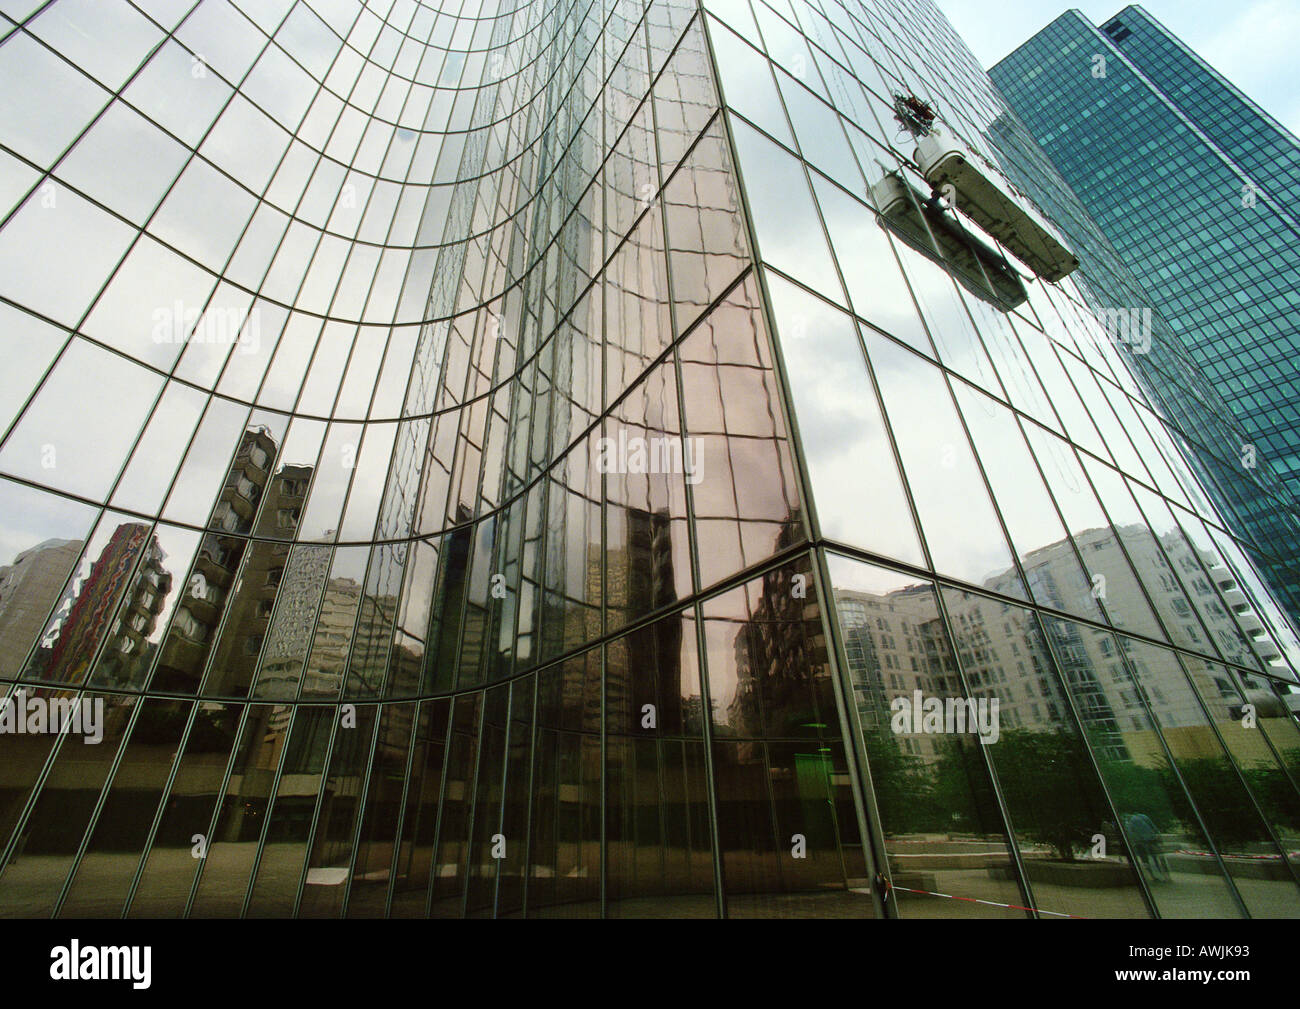 France, Paris, buildings reflected in glass facade of skyscraper - Stock Image